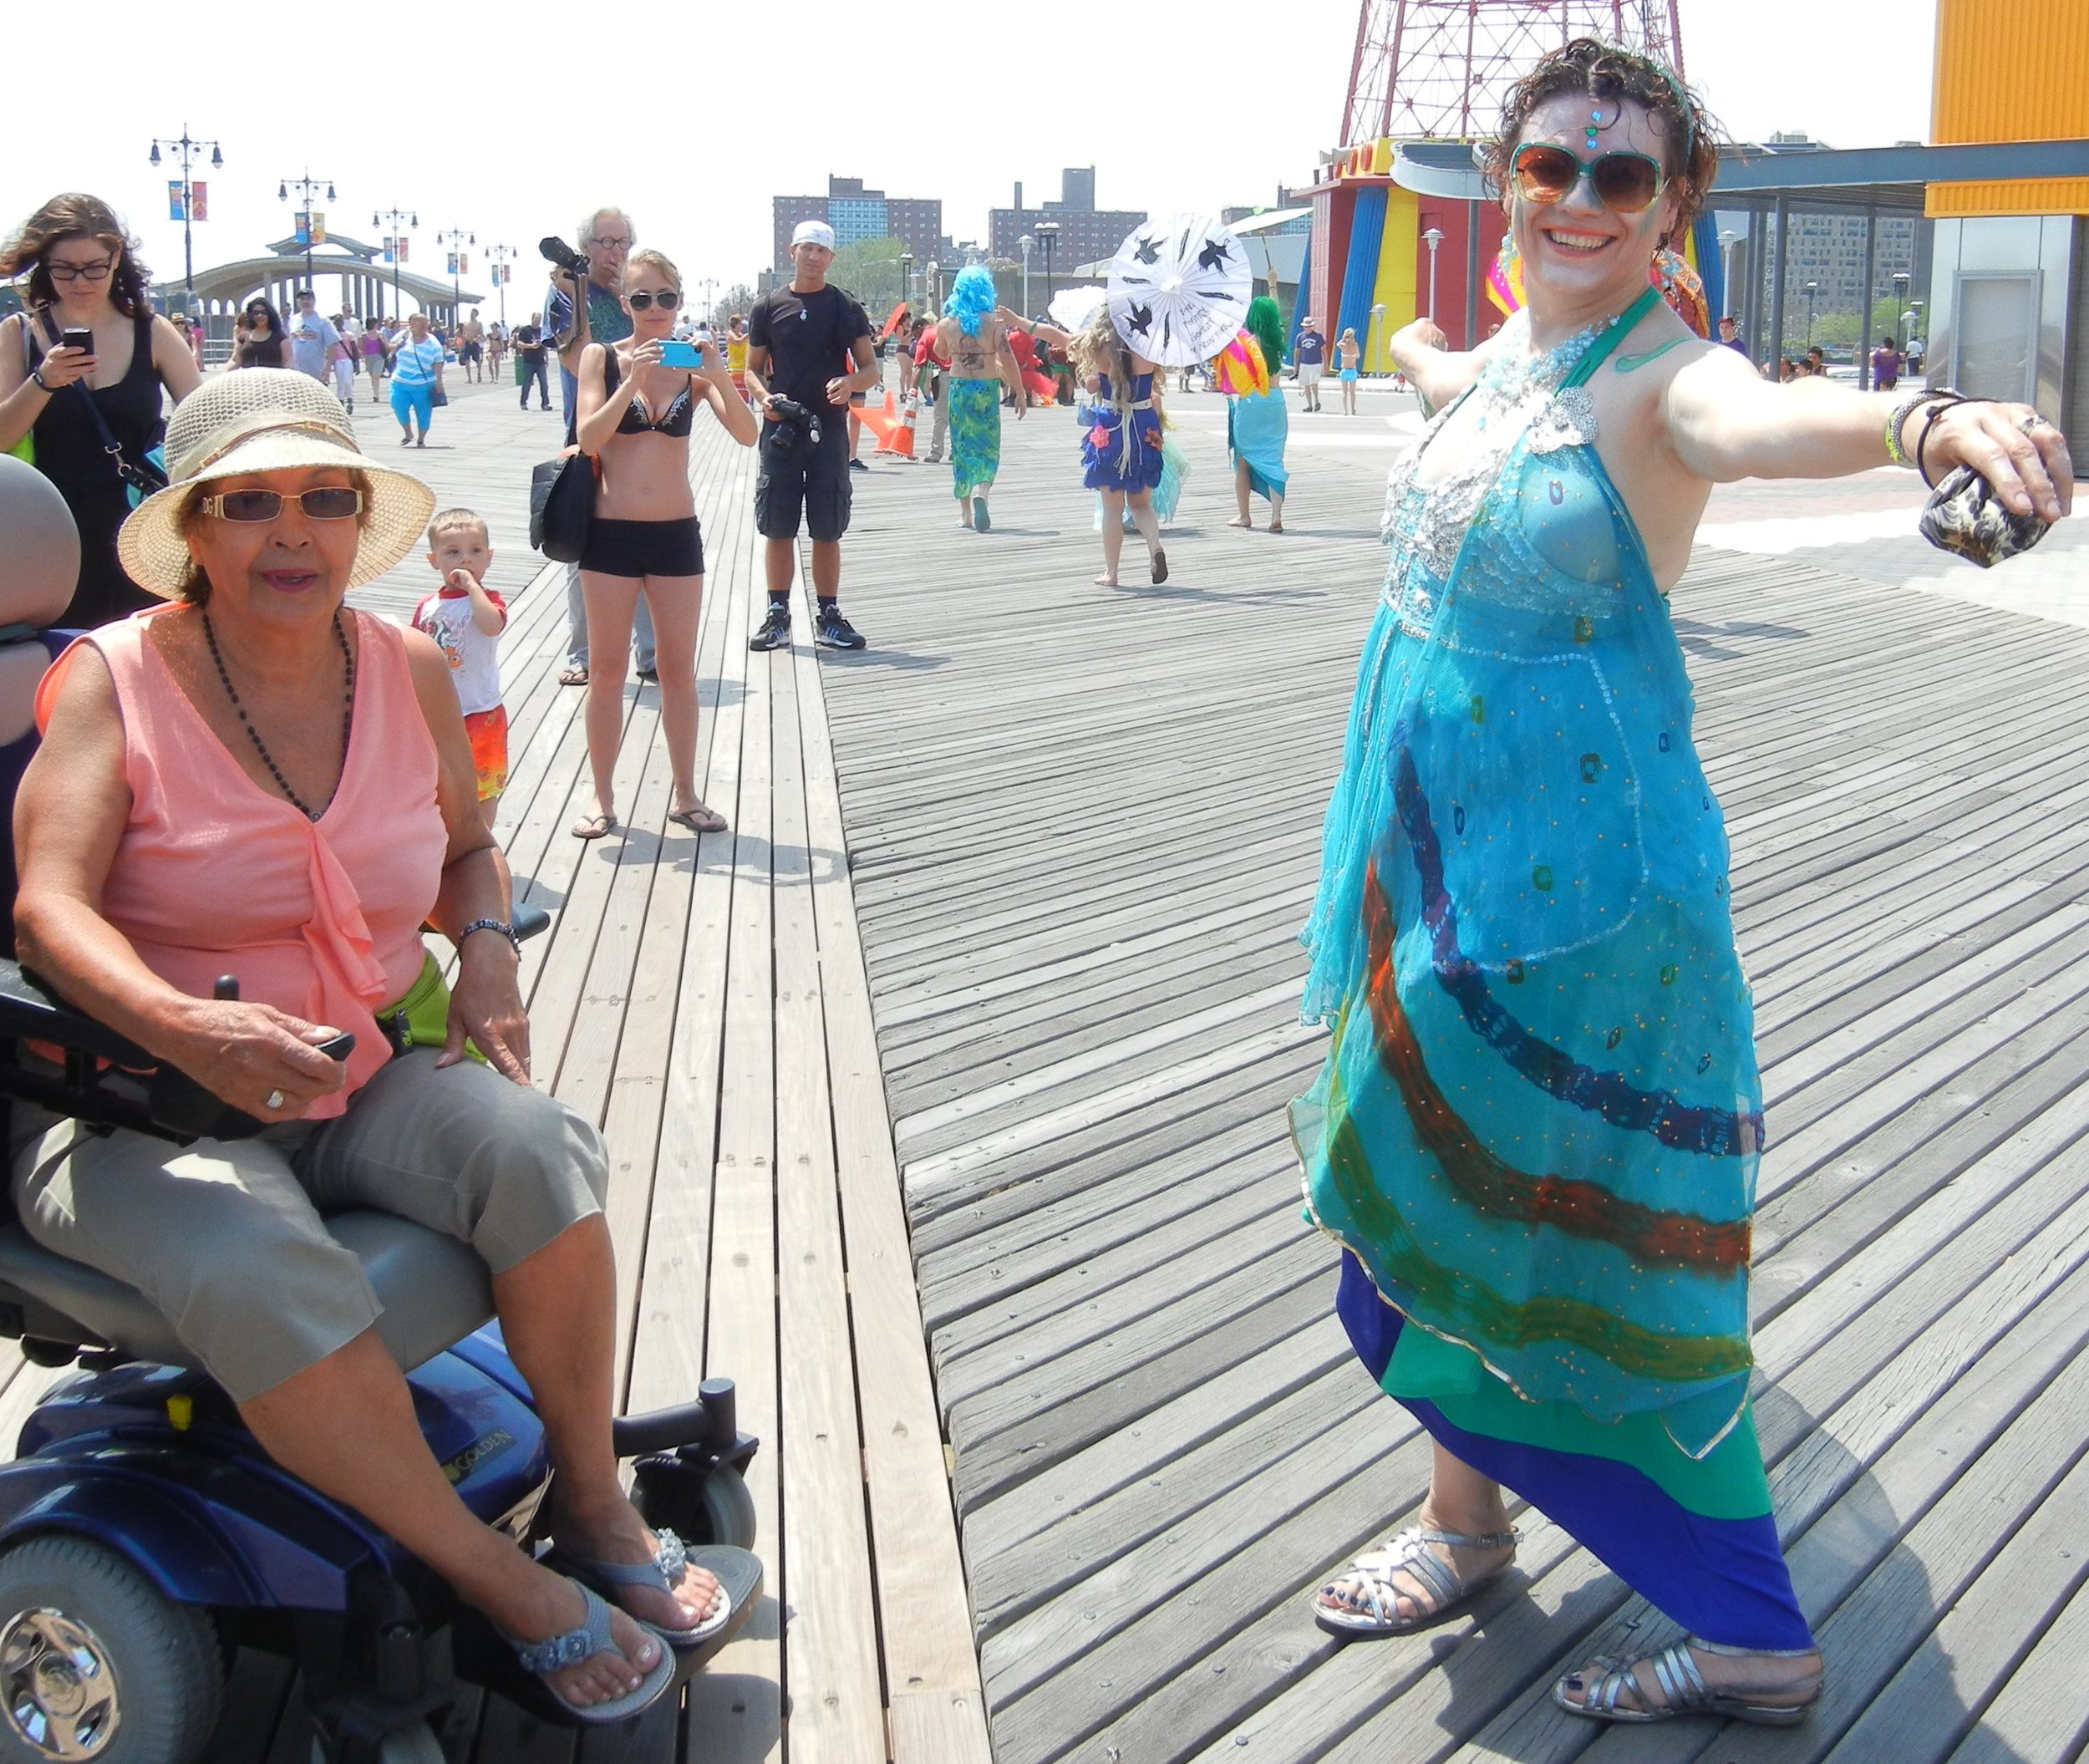 Photo Op after the Mermaid Parade on the boardwalk in Coney Island, New York, 2013.